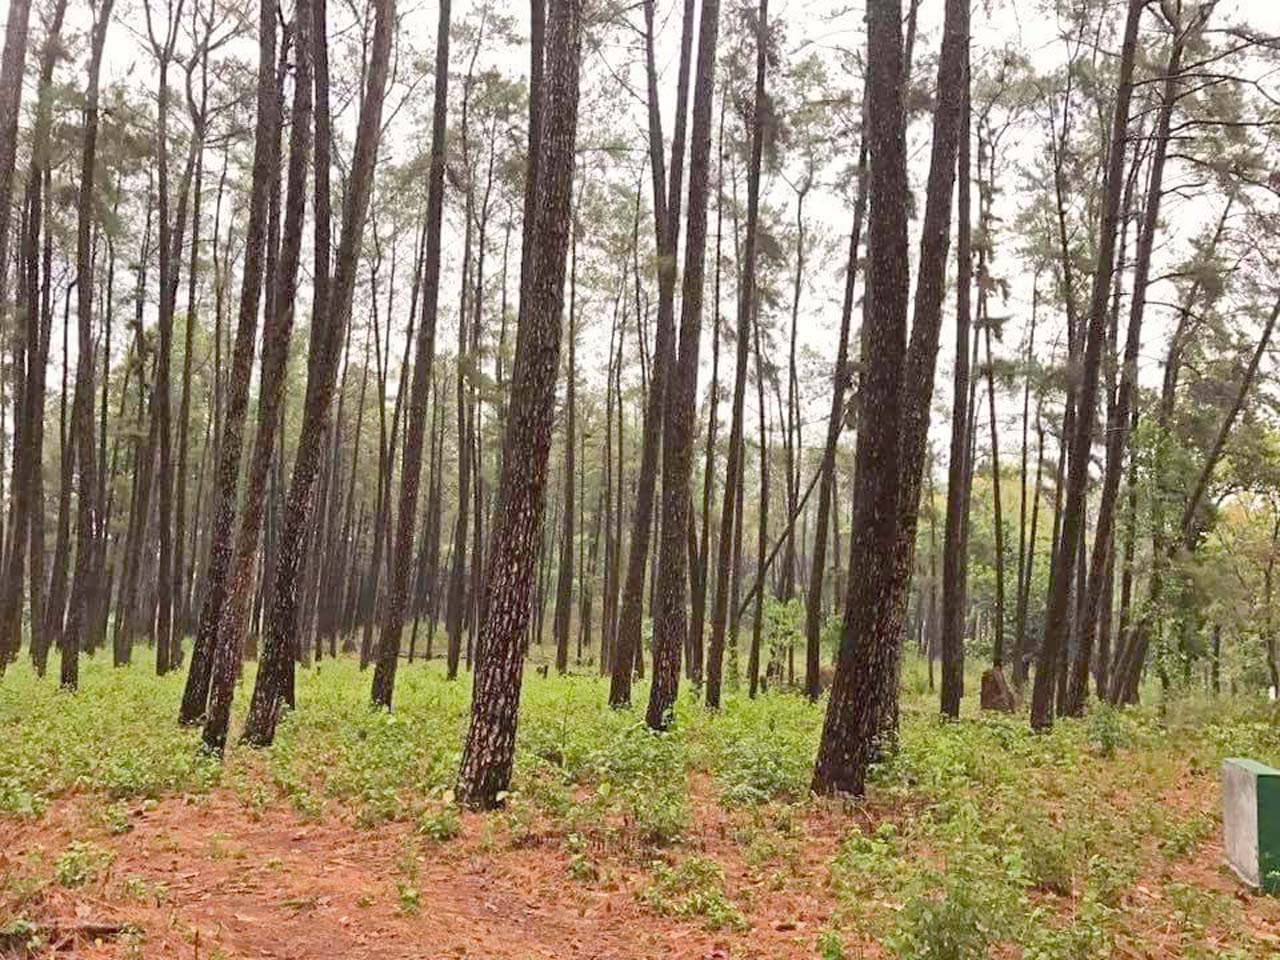 Dringbadi Pineforests